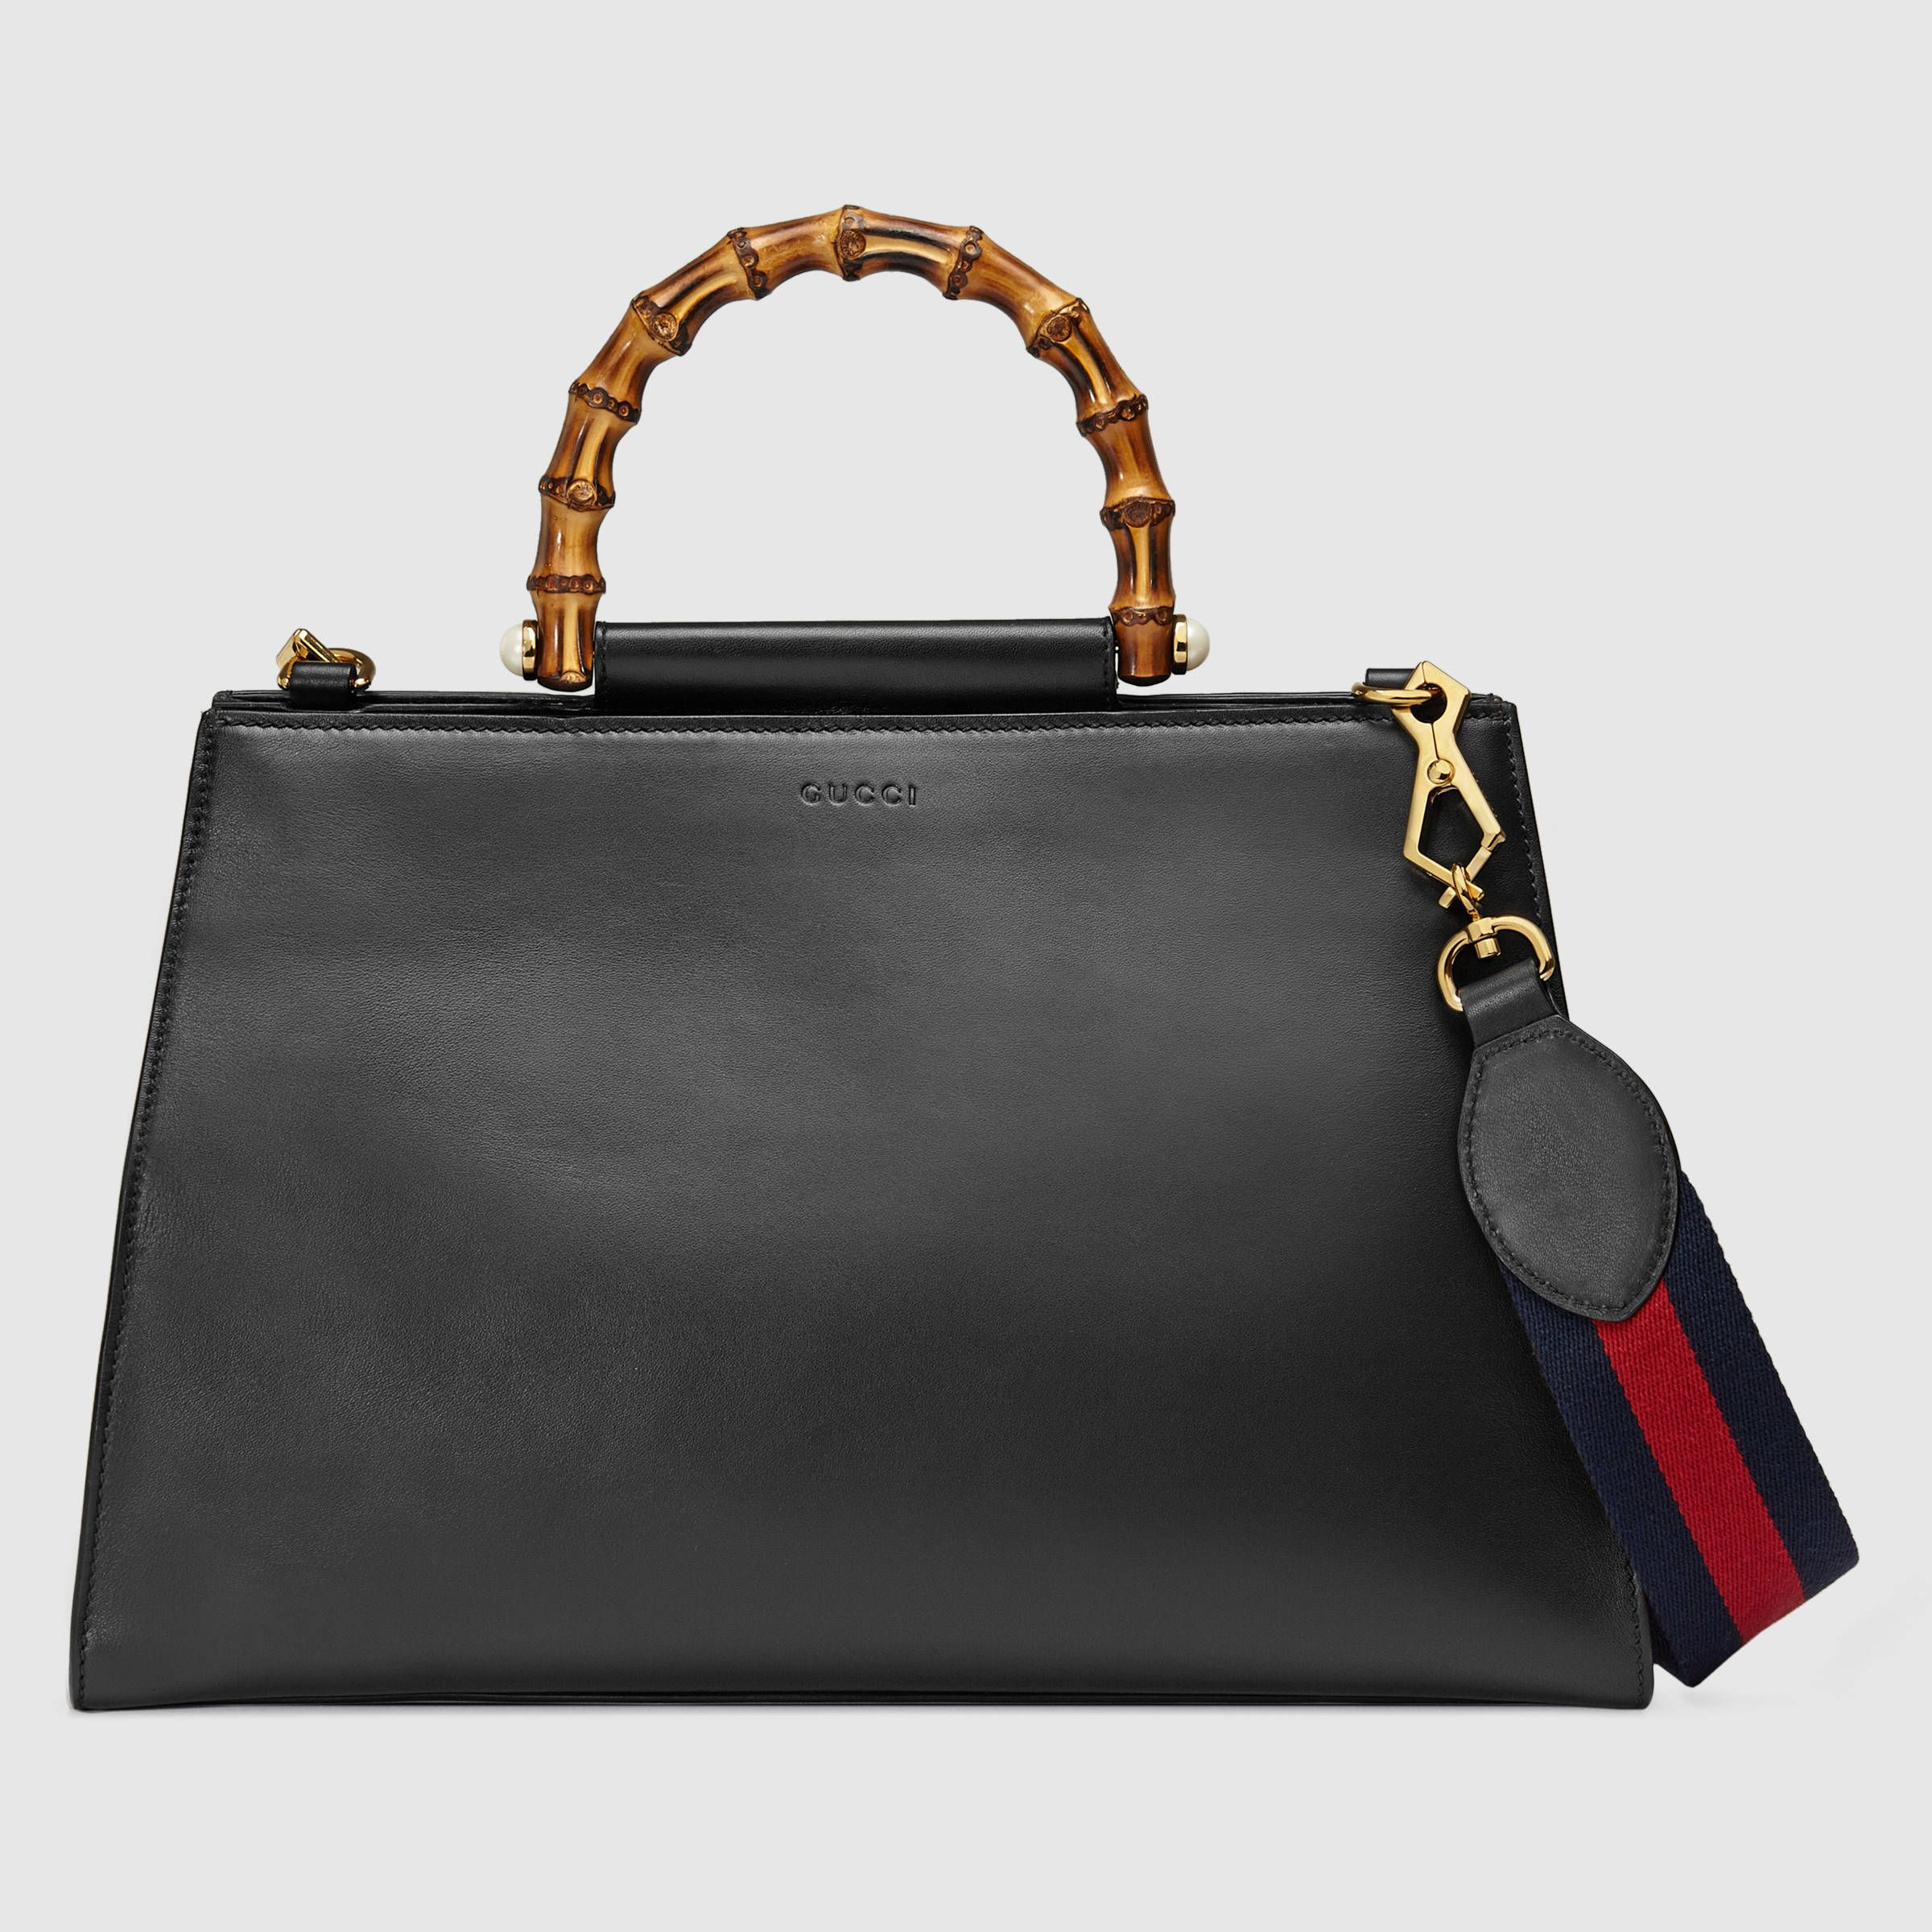 7eb9f830e2f826 Sac à main Gucci Nymphaea en cuir | Fashion 2018 | Gucci tote bag ...